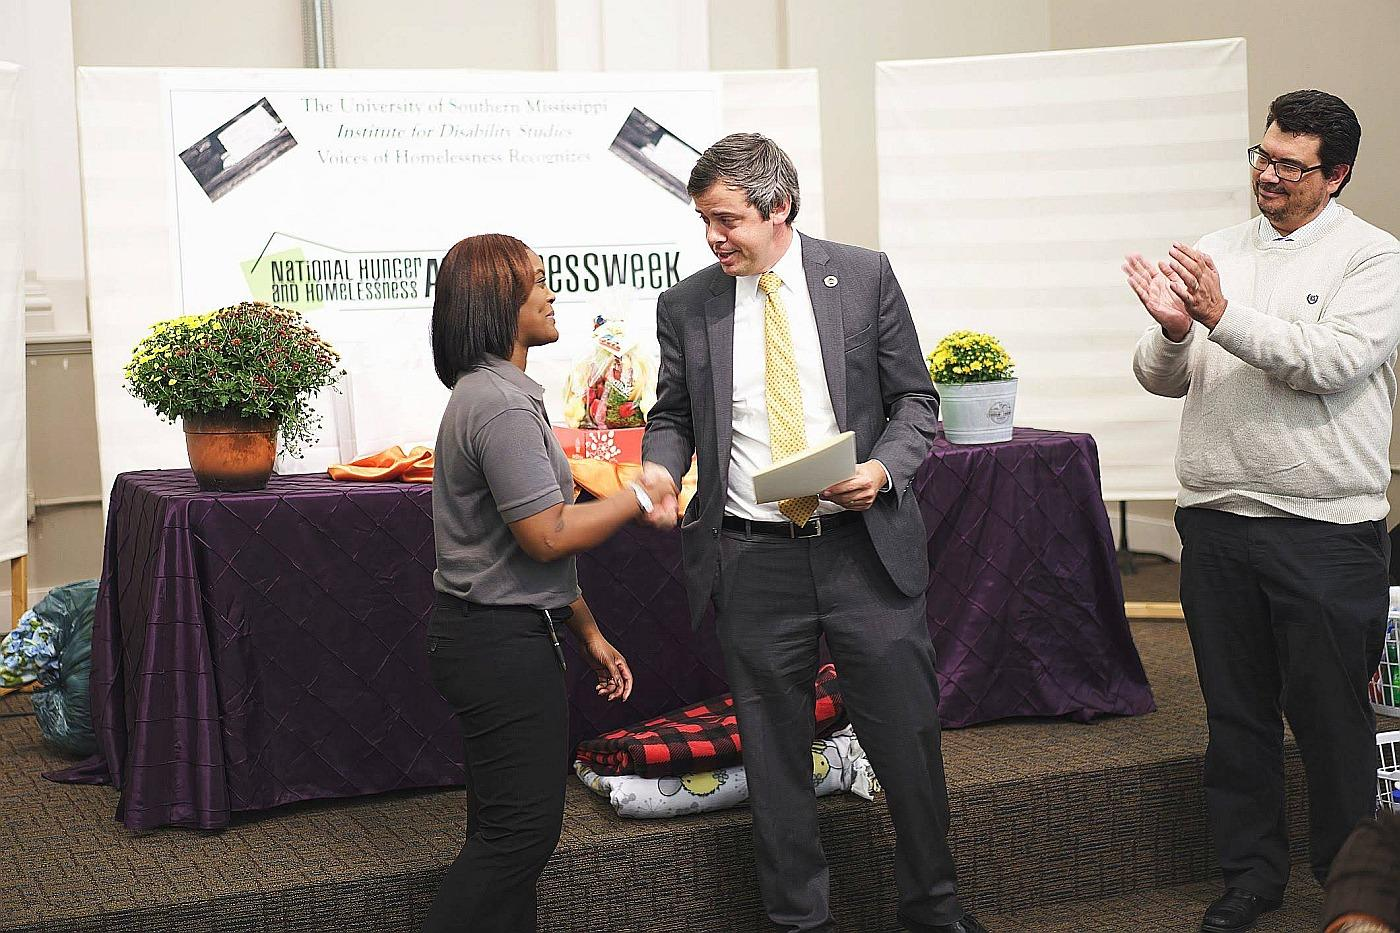 Mayor Barker recognizes IDS for our work with the homeless population